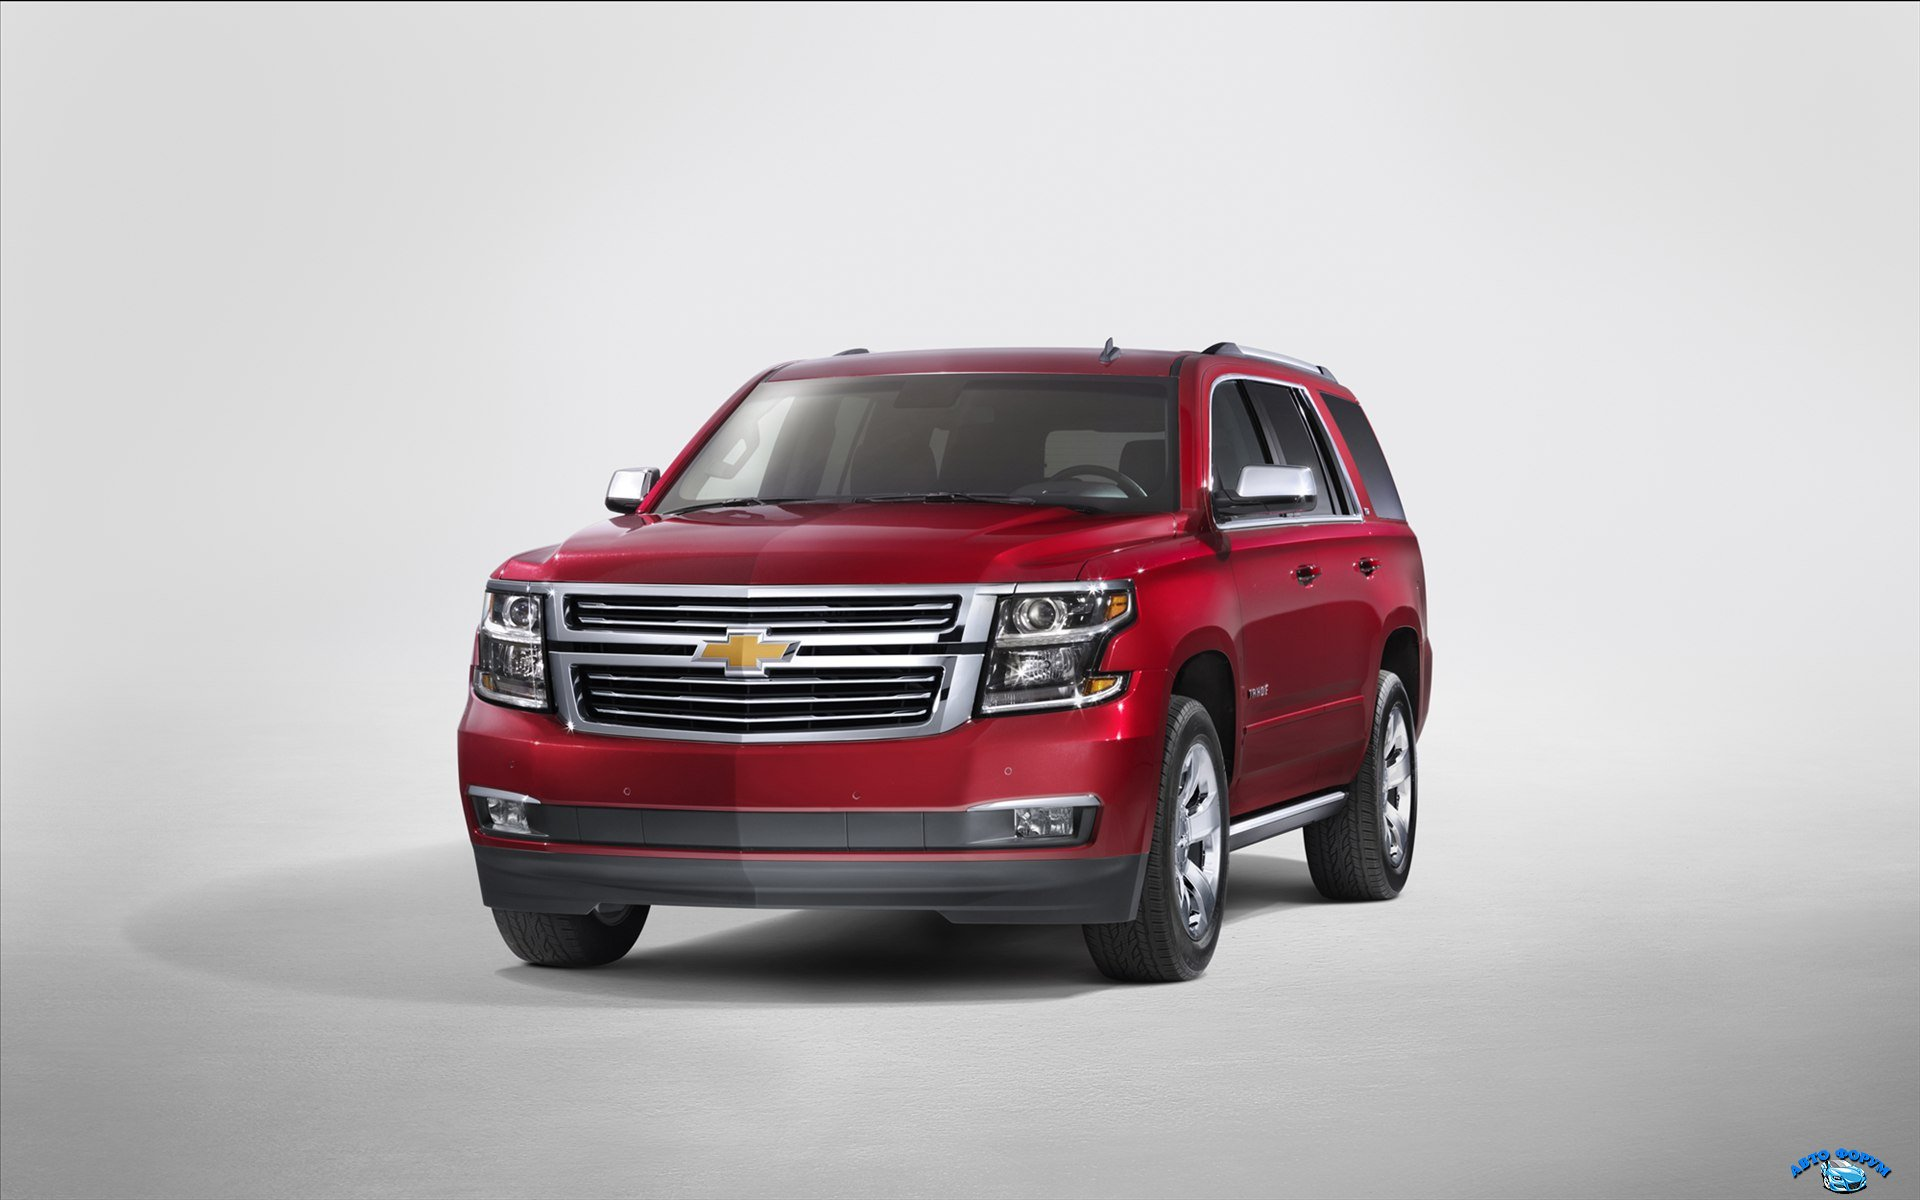 Chevrolet-Tahoe-2015-widescreen-02.jpg